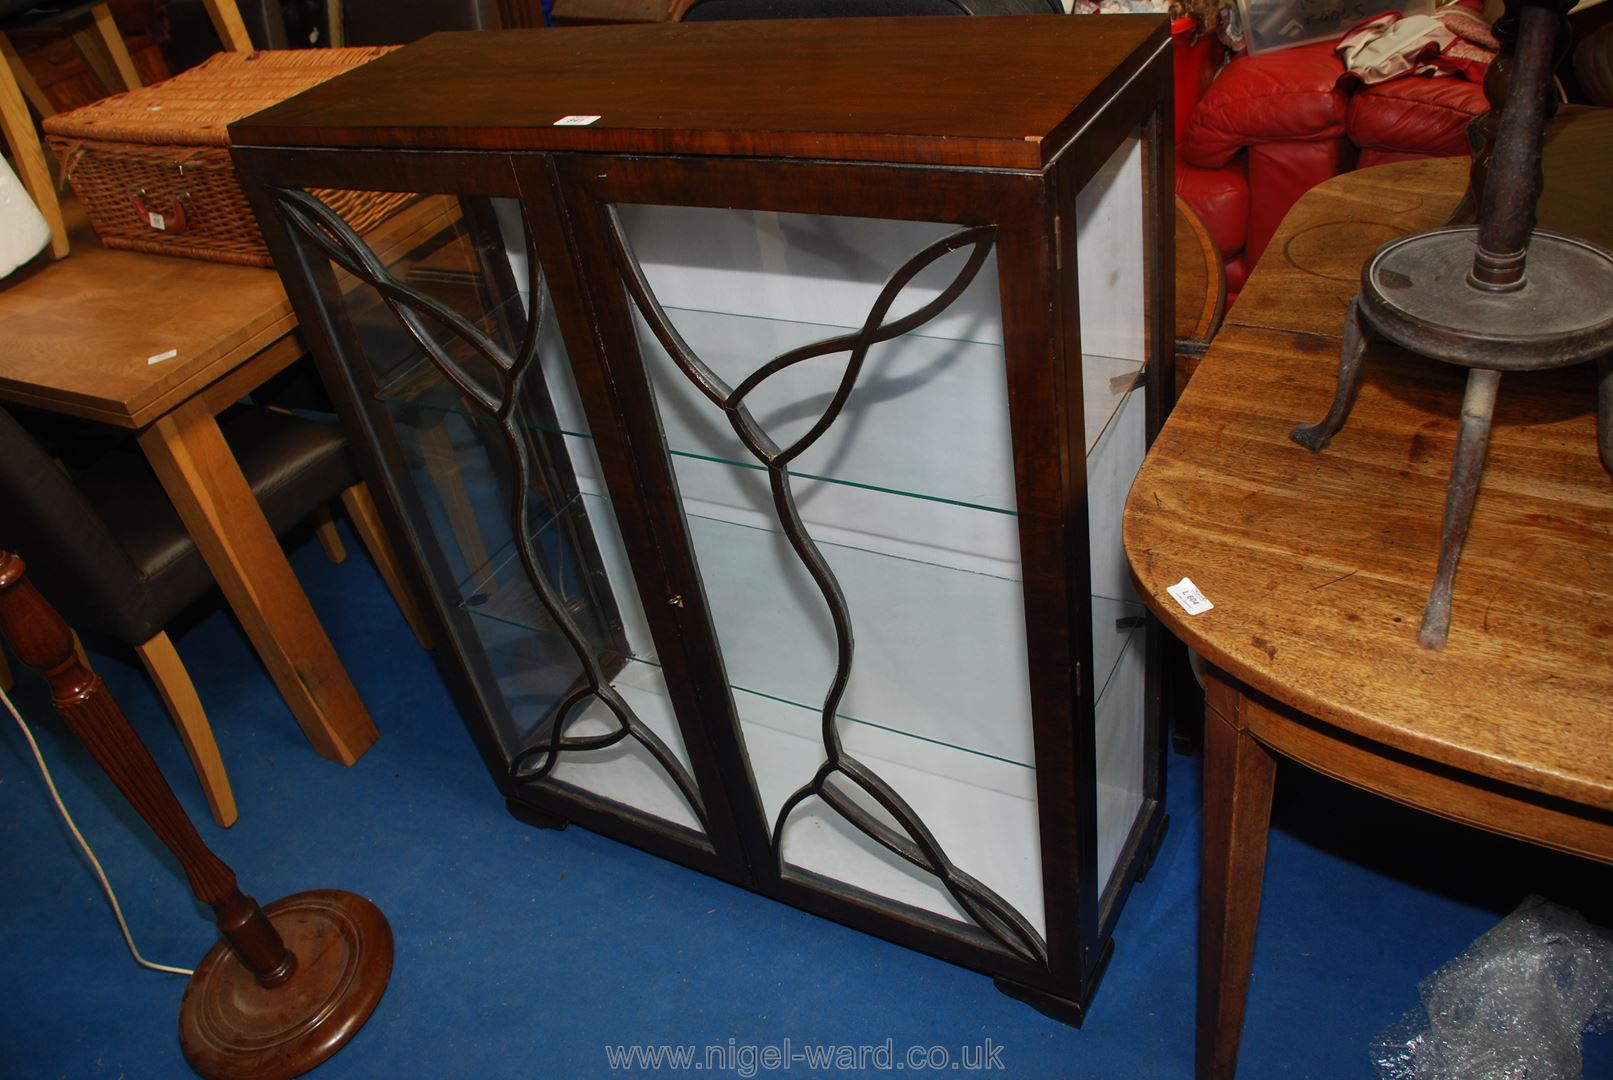 Glass fronted display cabinet with two shelves.